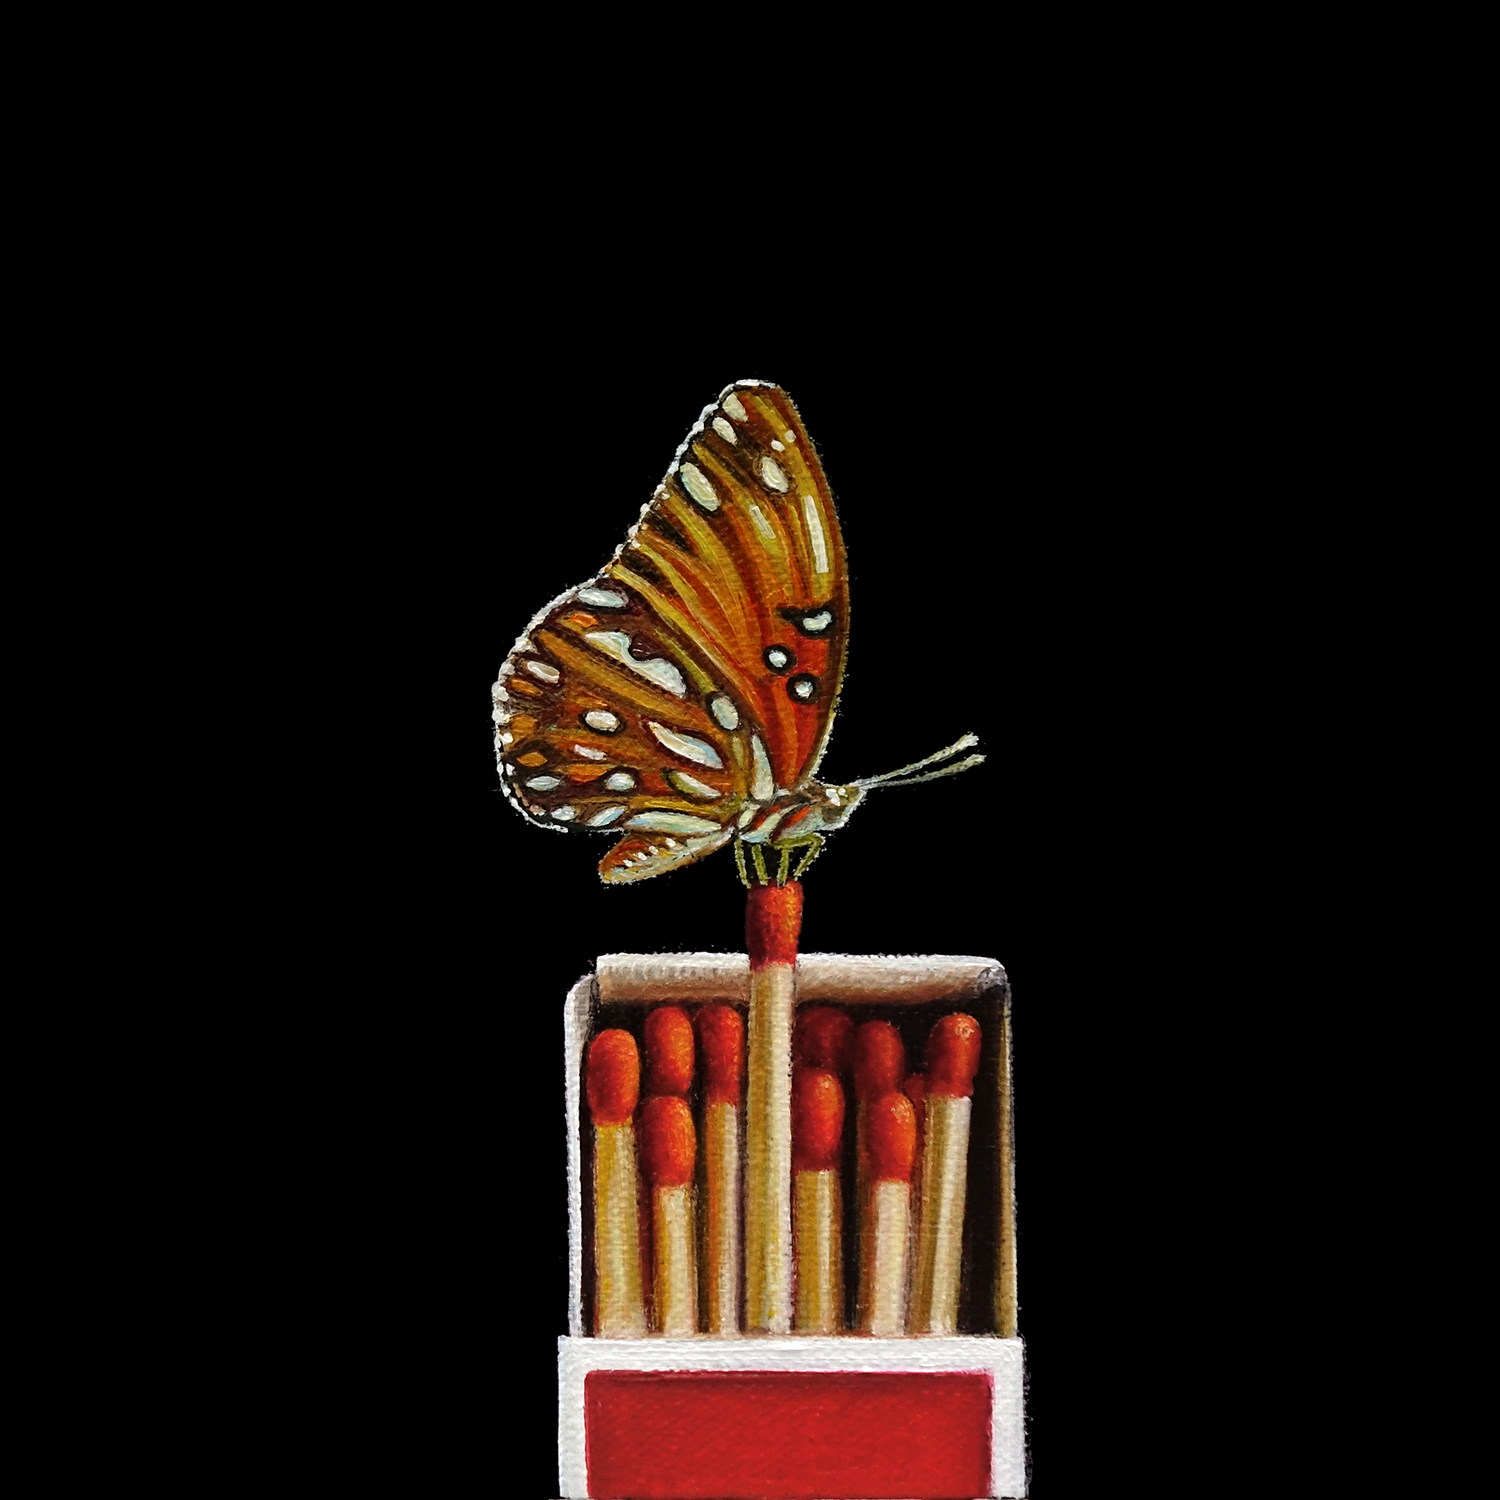 Match Box No. 2   |  7 x 7  |   Oil on canvas